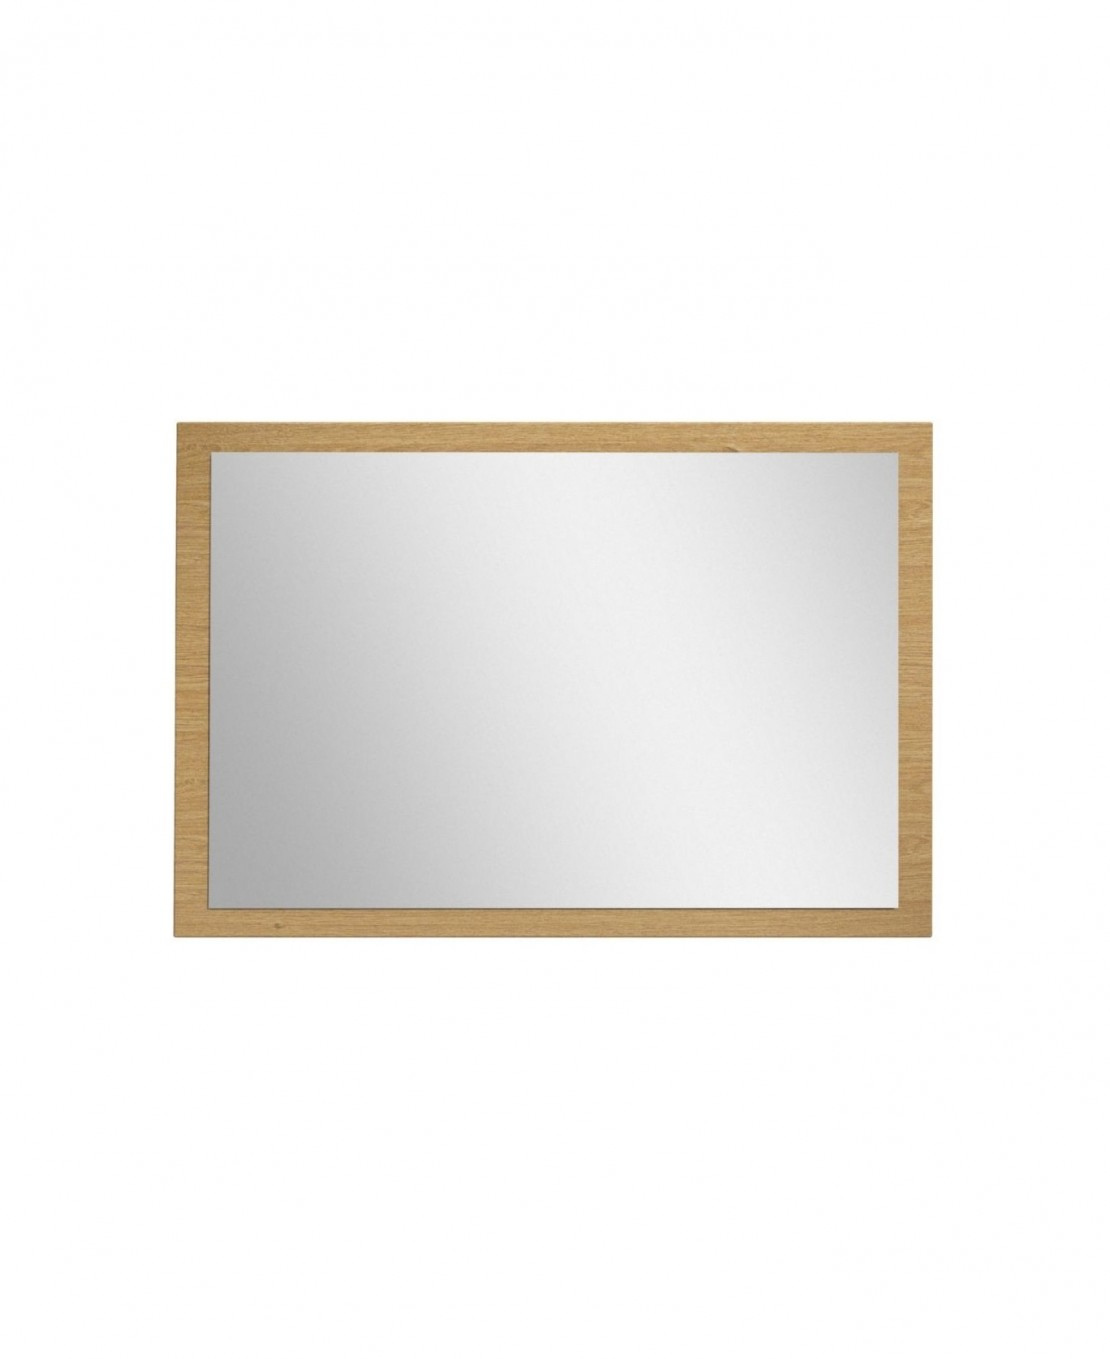 /_images/product-photos/kt-furniture-deco-mirror-oak-woodgrain-with-oak-a.jpg